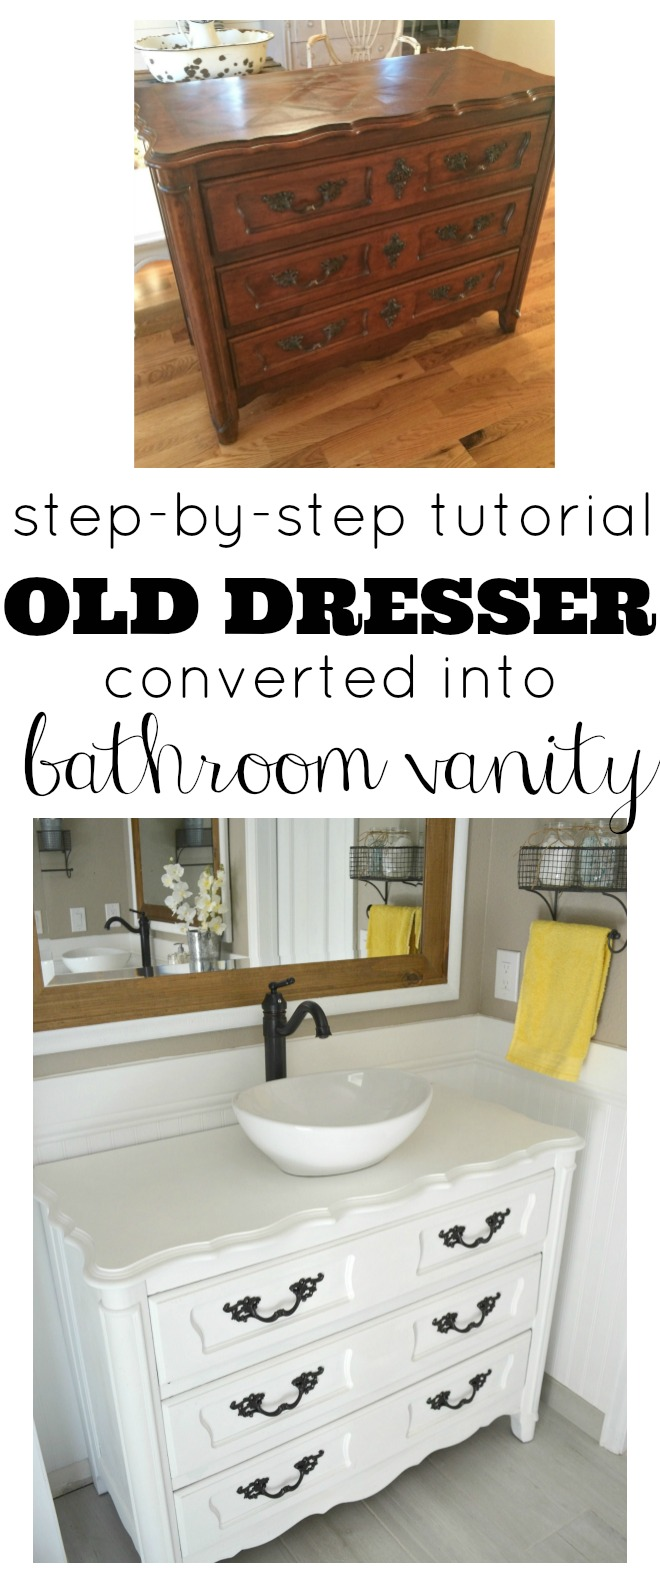 Exceptionnel Step By Step Tutorial For Turning An Old Dresser Into A Bathroom Vanity.  Great DIY